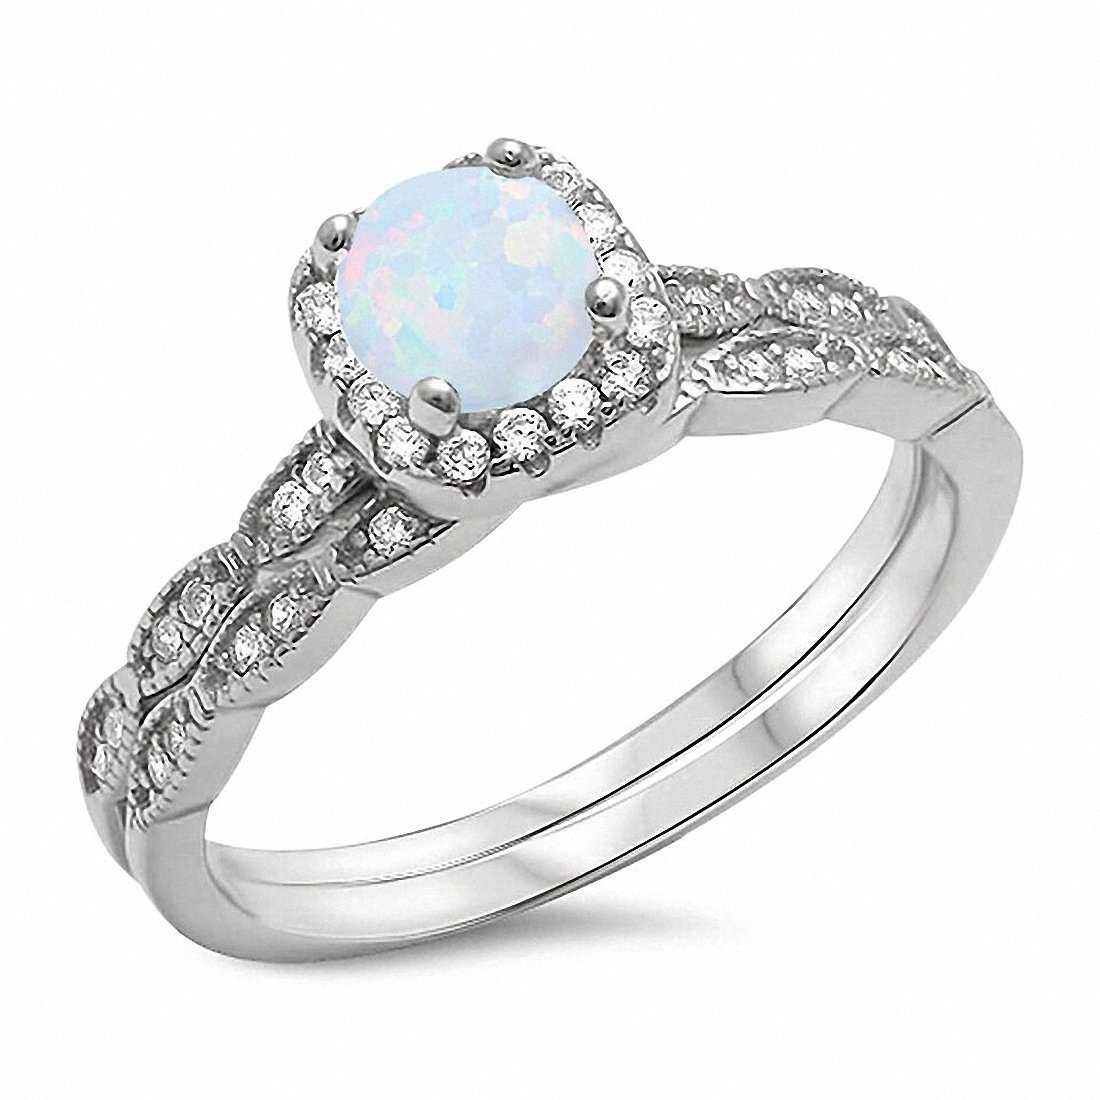 Blue Apple Co. Two Piece Halo Art Deco Wedding Engagement Ring Band Lab White Opal 925 Sterling Silver,Size-6